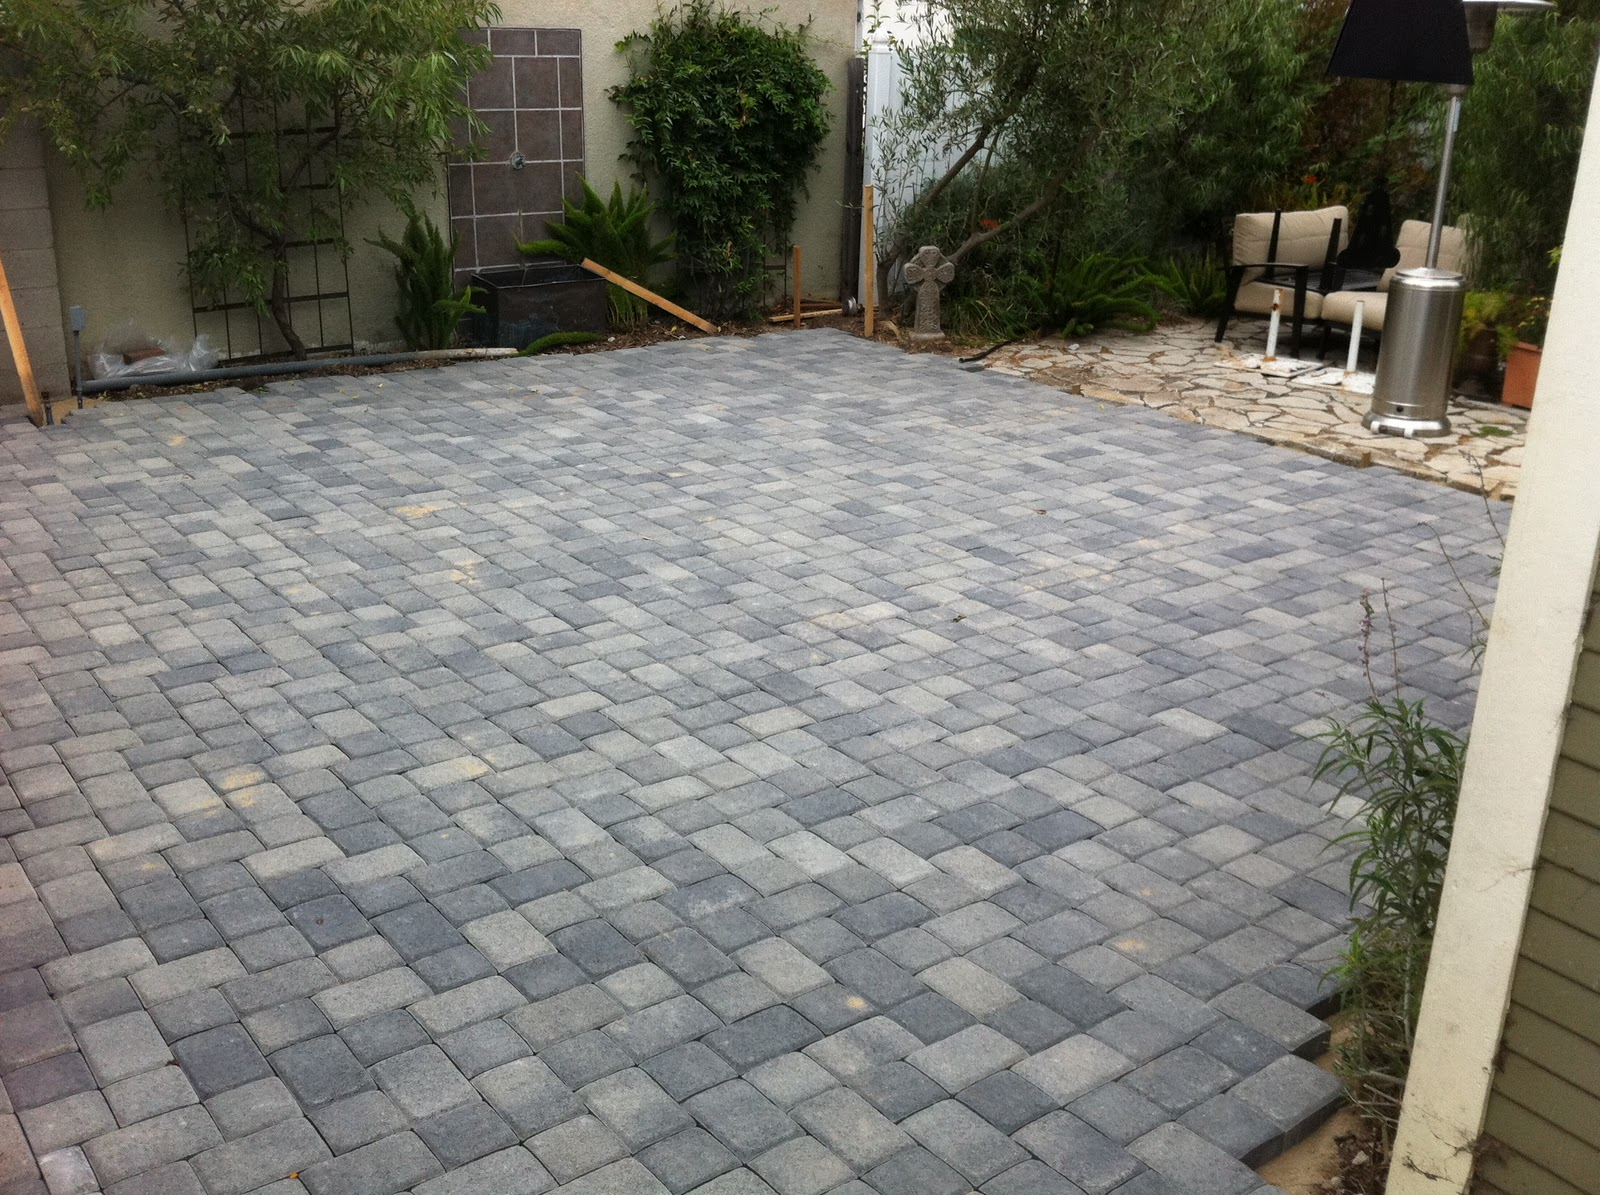 Large patio pavers patio design ideas for Paver patio ideas pictures